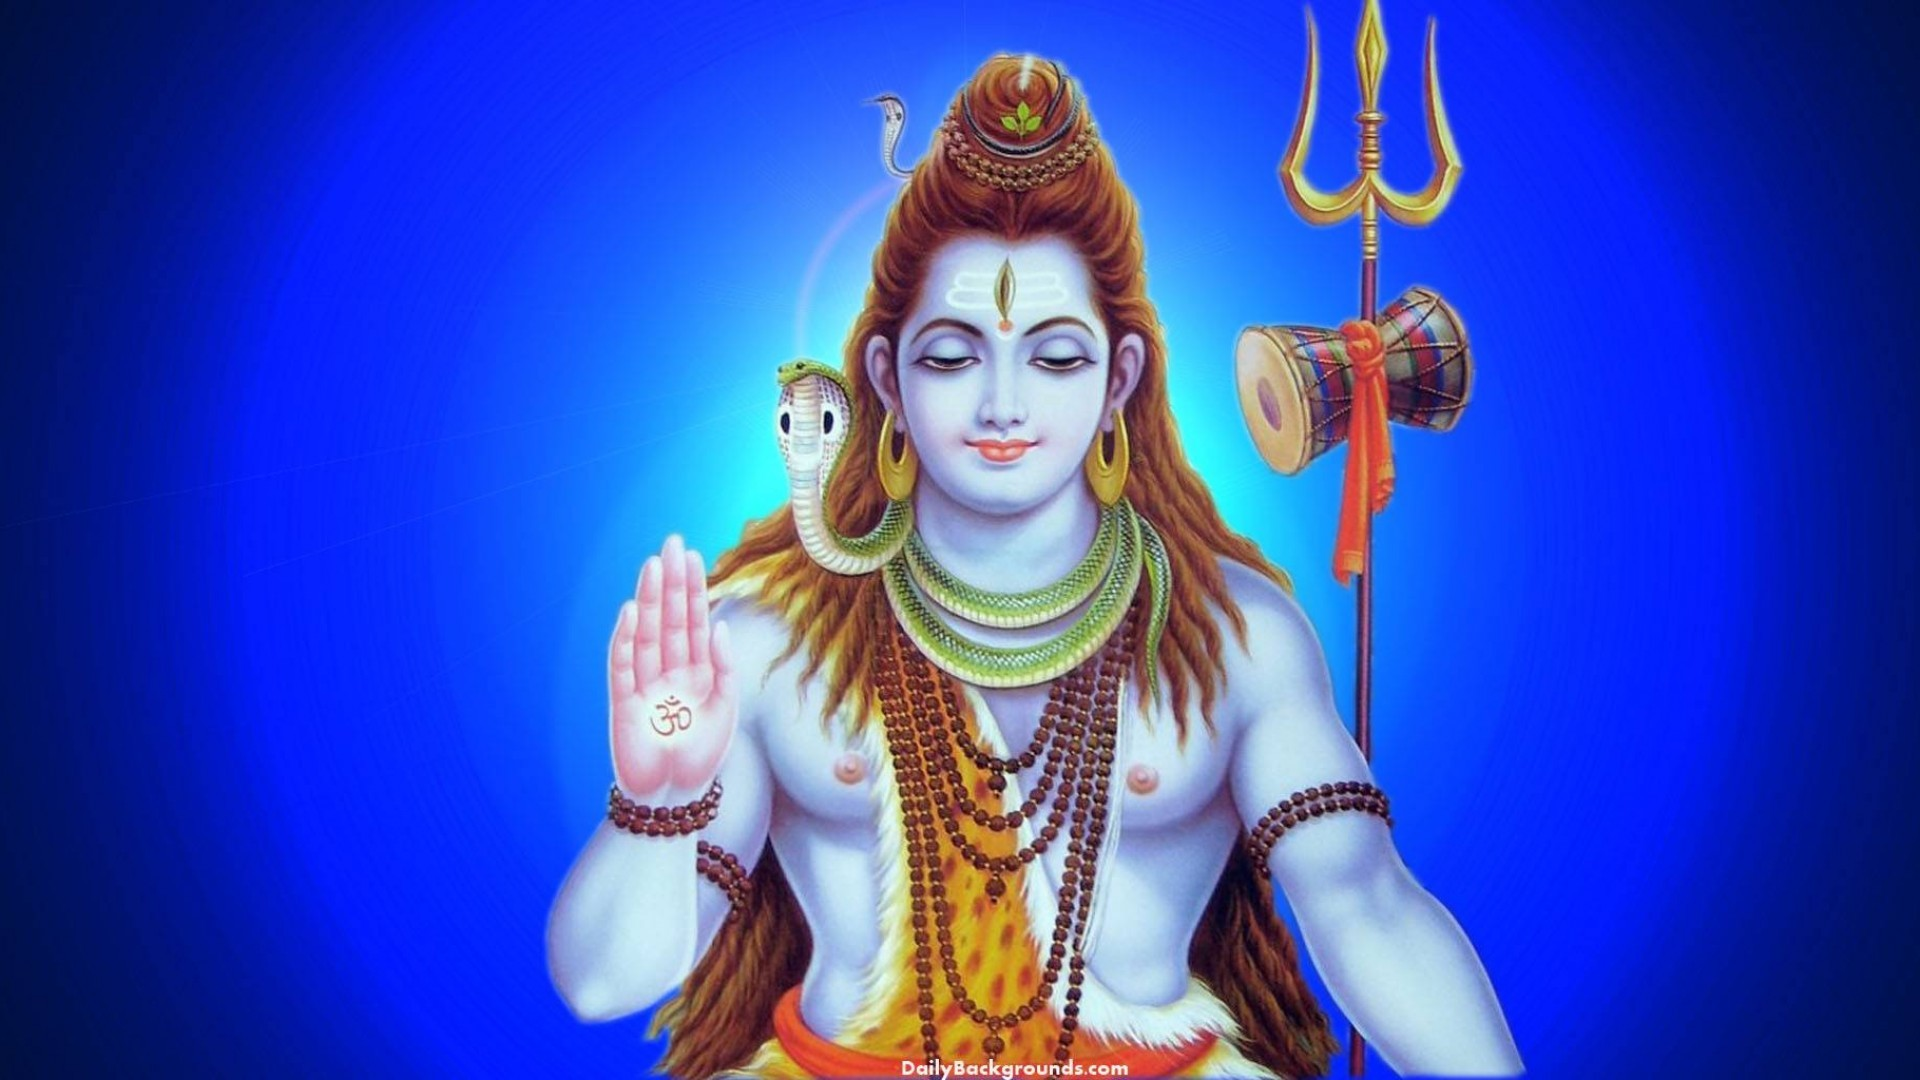 Shiva Wallpaper Hindu Wallpaper Lord Shiva Ji Wallpapers: Hindu God HD Wallpapers 1080p (68+ Images